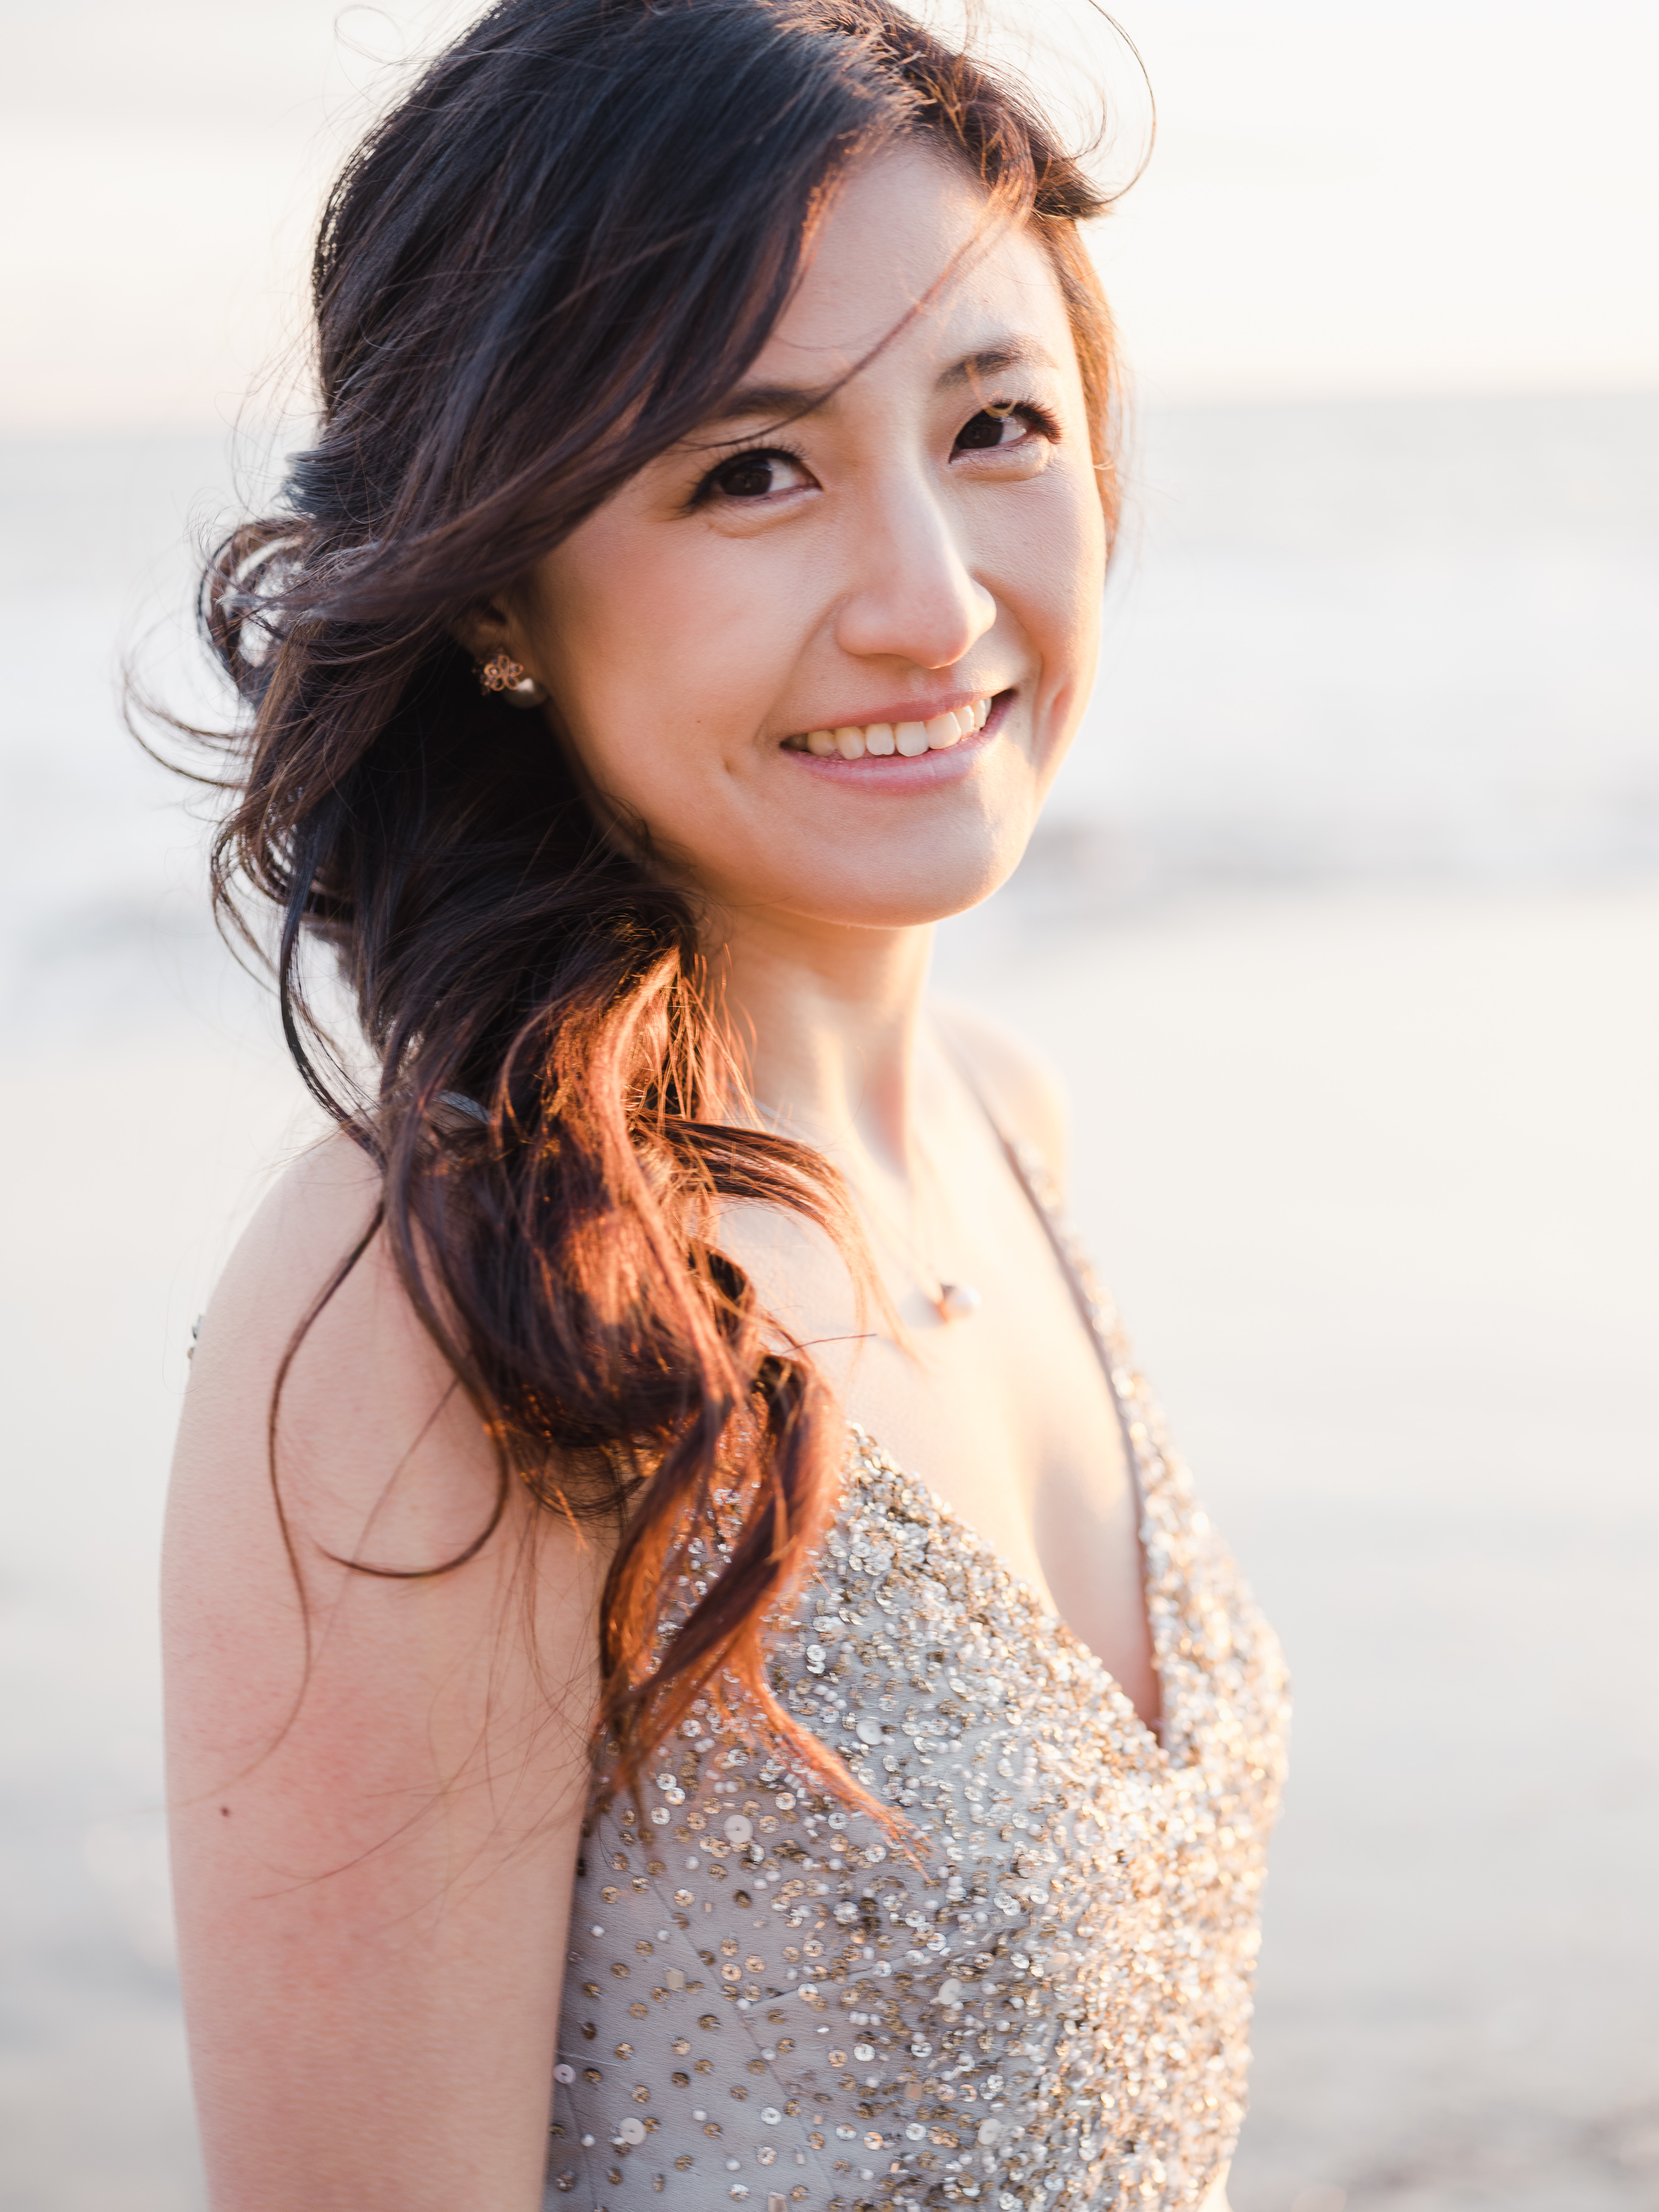 Woman in a beaded dress smiling at the camera on the beach